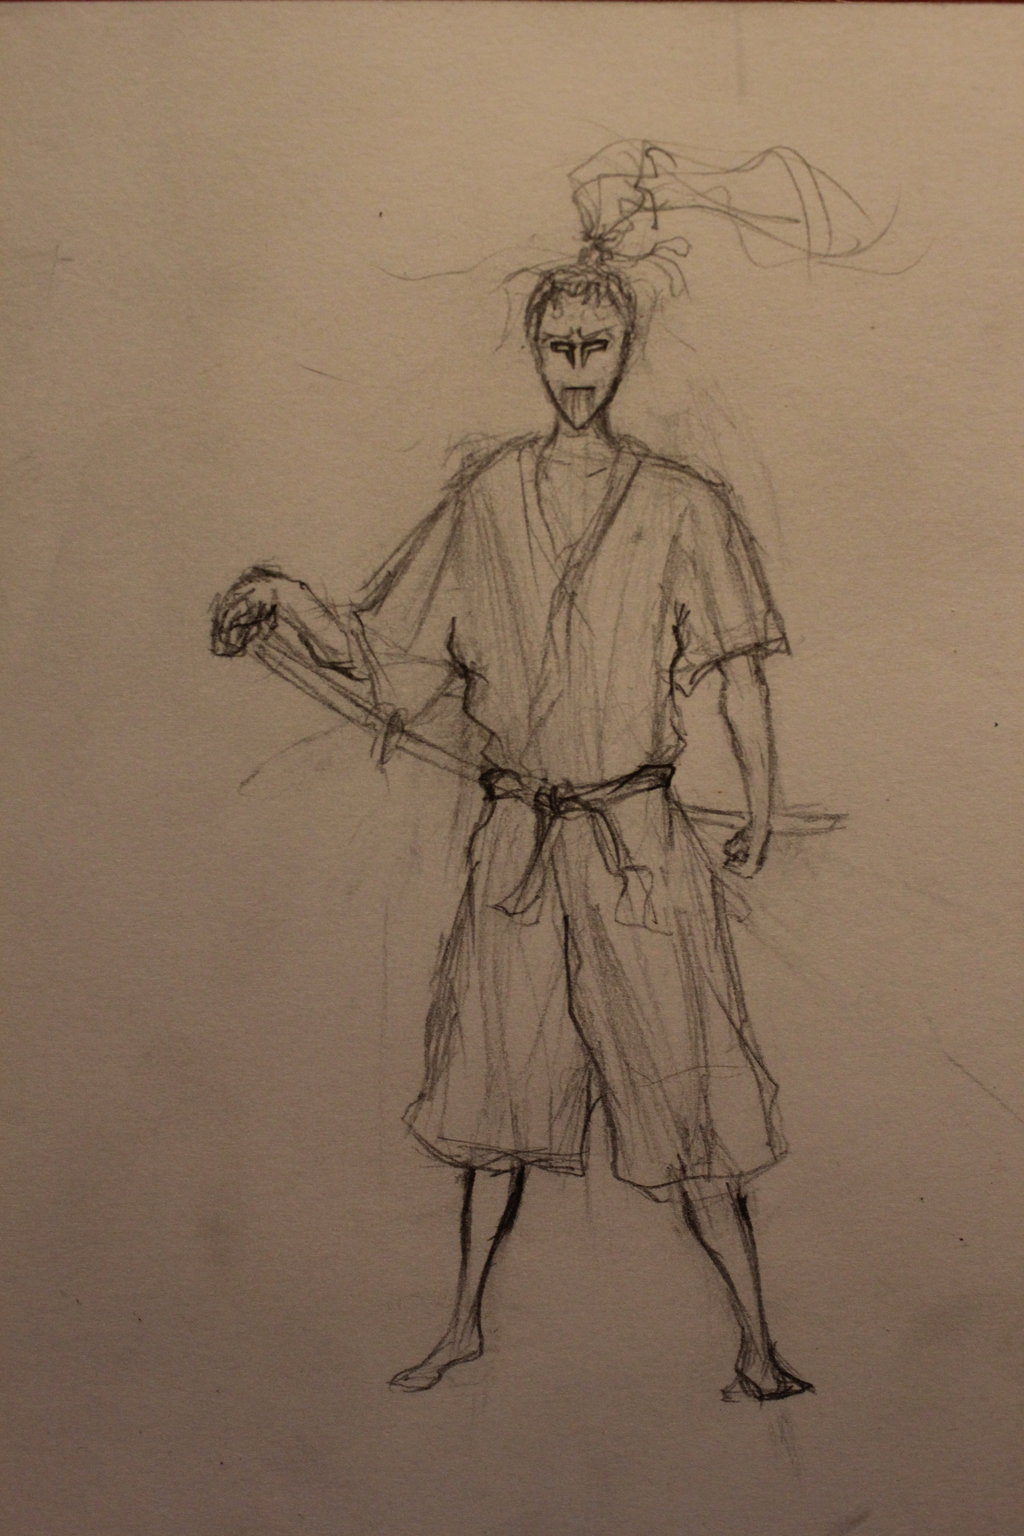 Drawn samurai ronin samurai On by Samurai Drawing Samurai